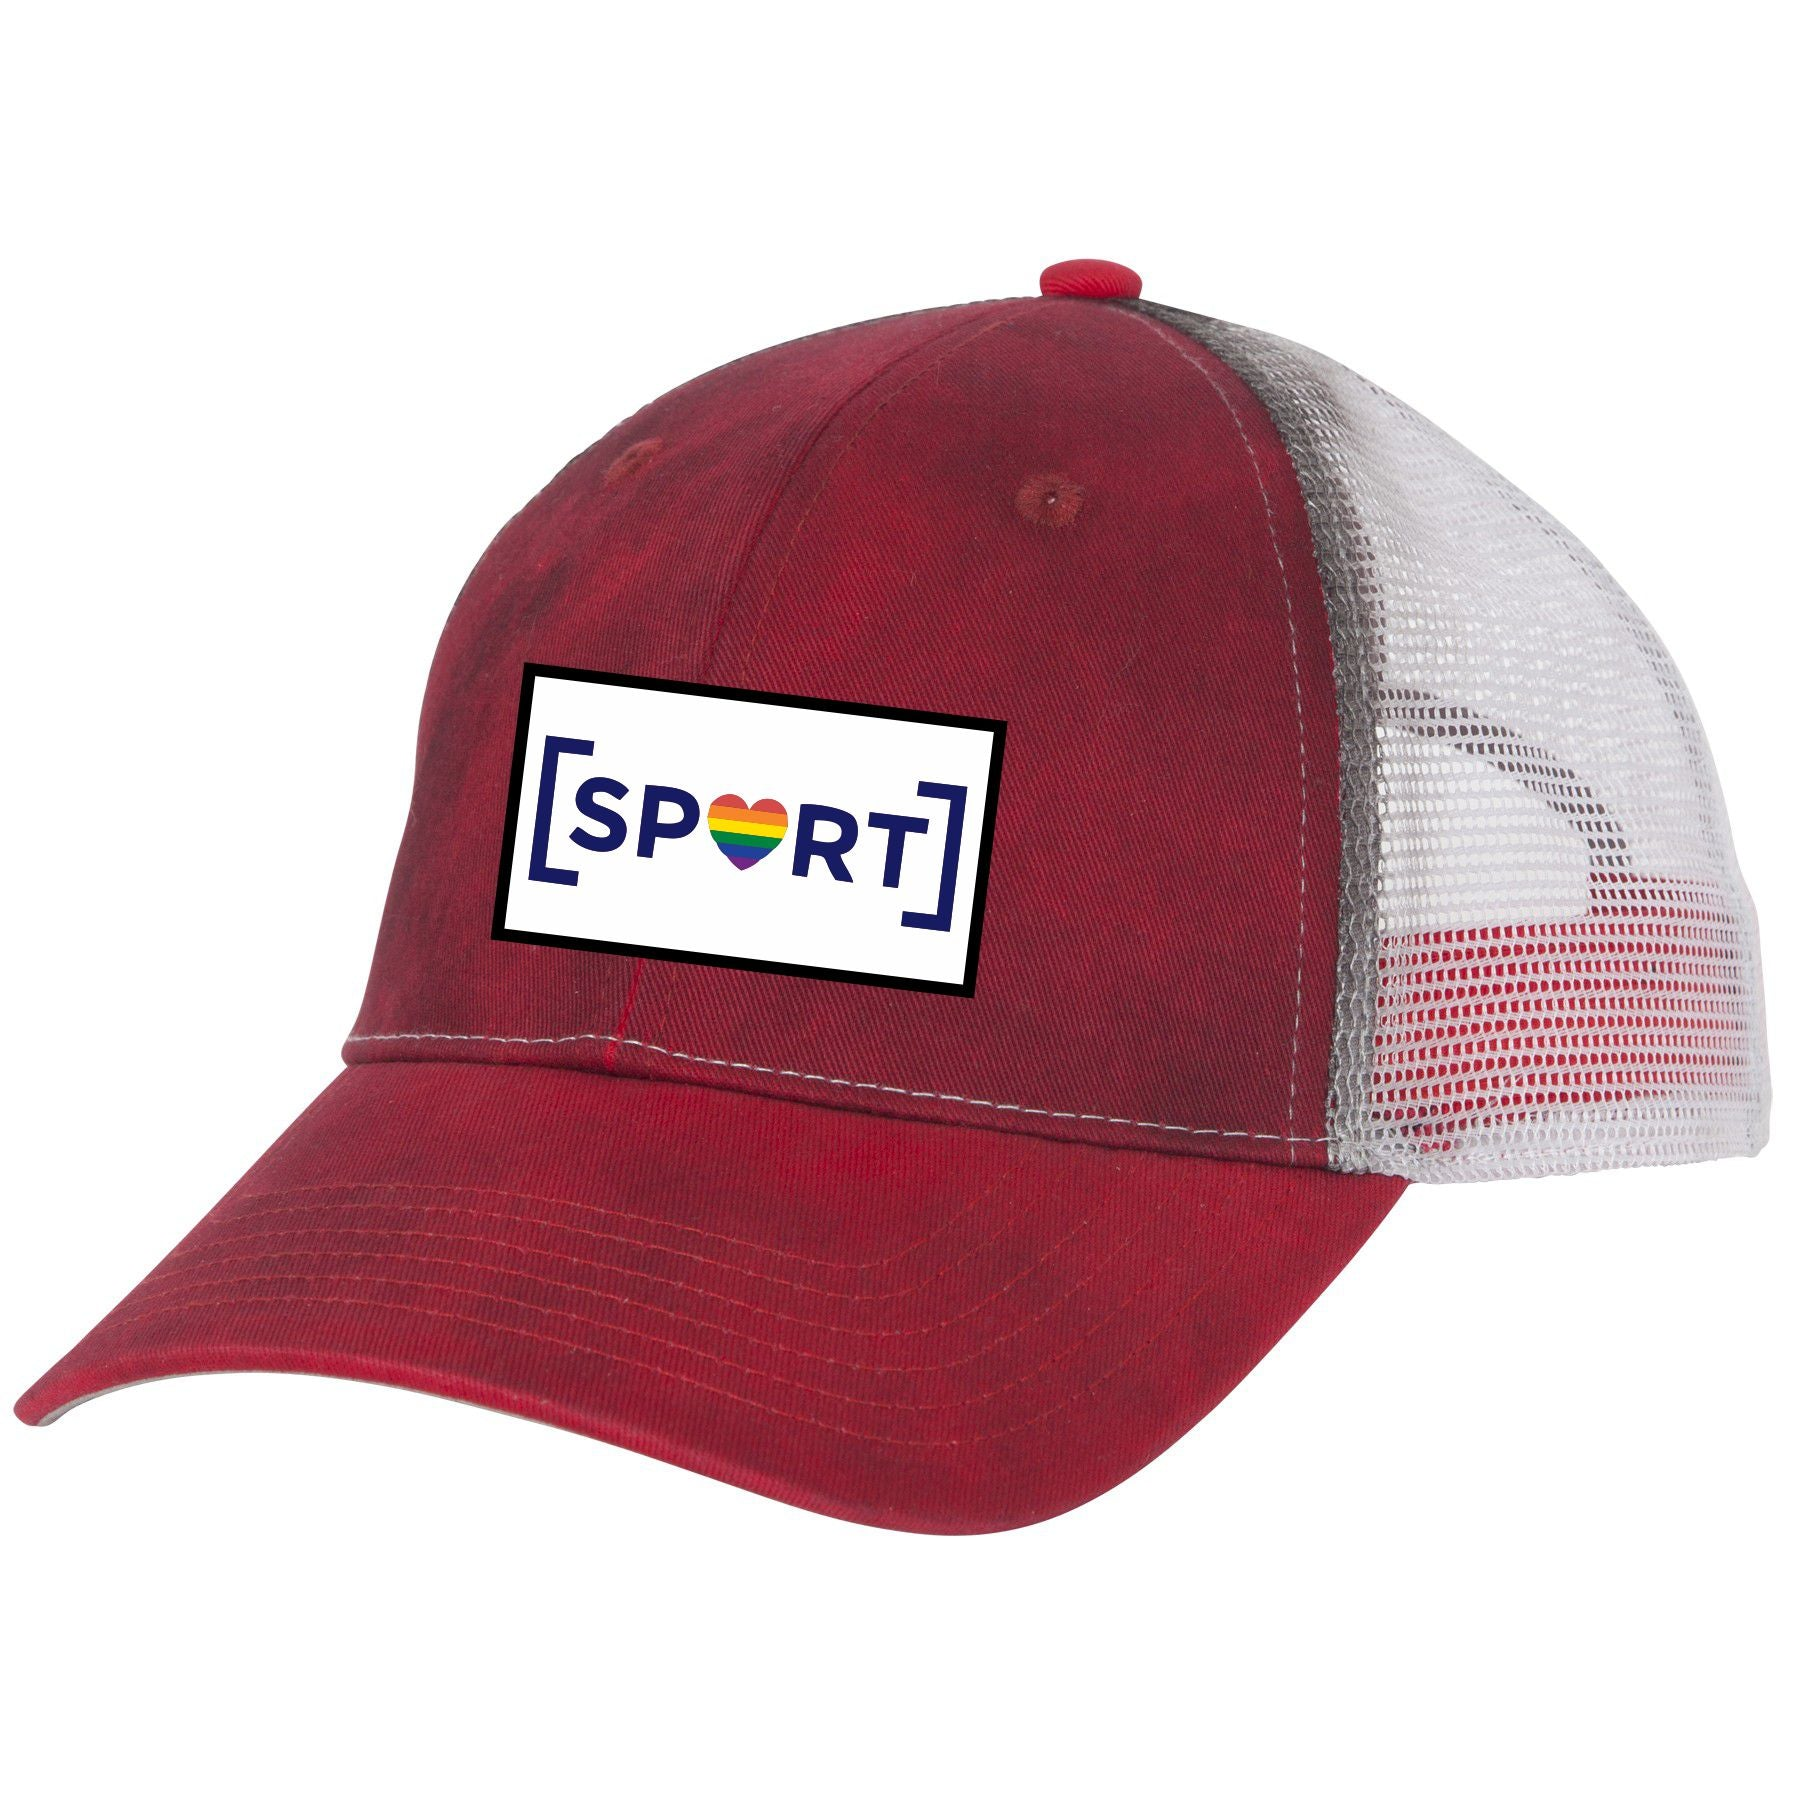 Distressed Trucker Hat (Red or Blue)